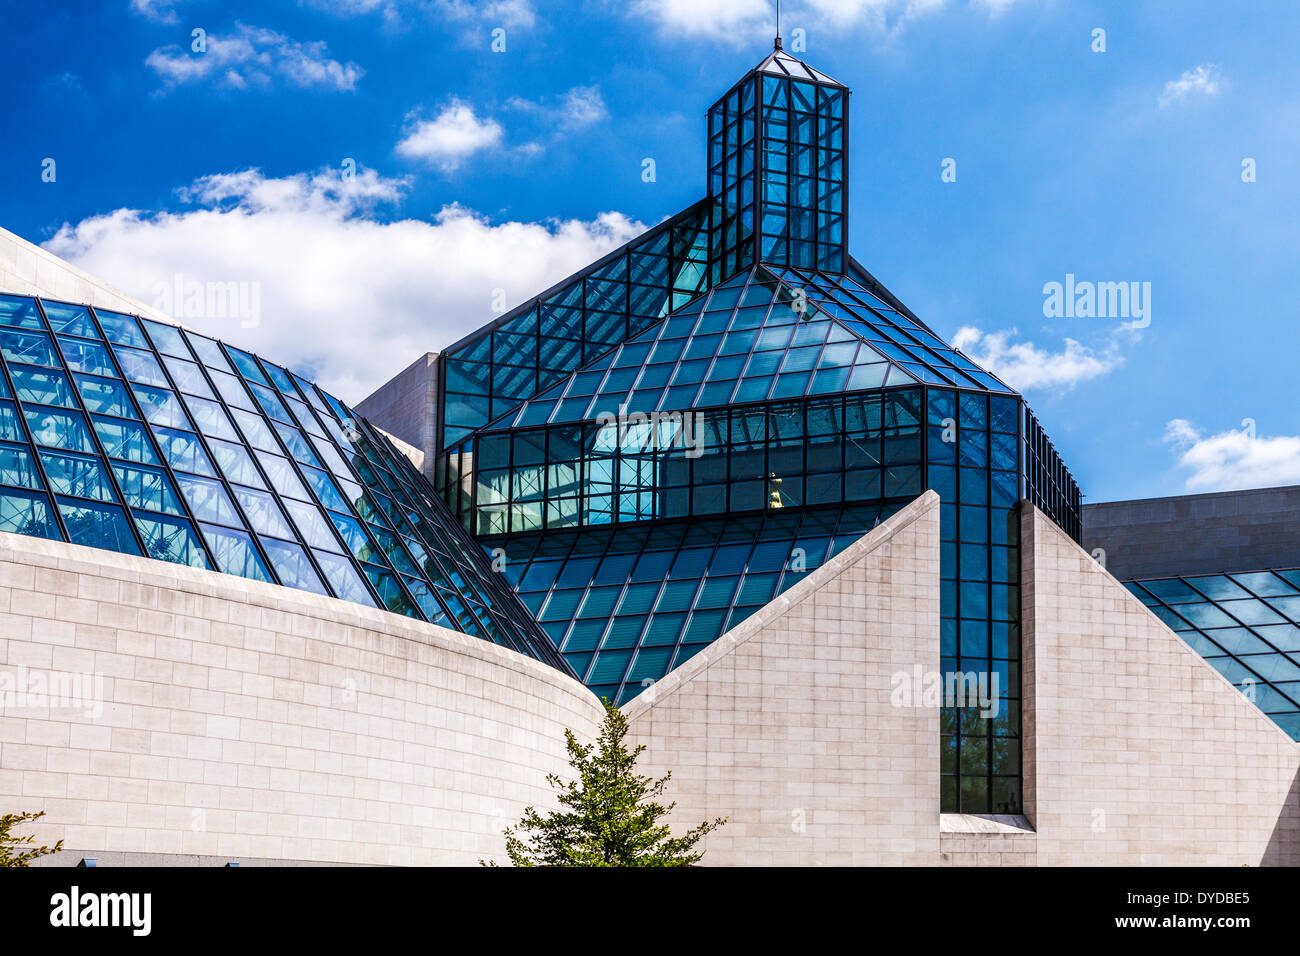 The MUDAM Museum of Modern Art in the Kirchberg district of Luxembourg City. - Stock Image